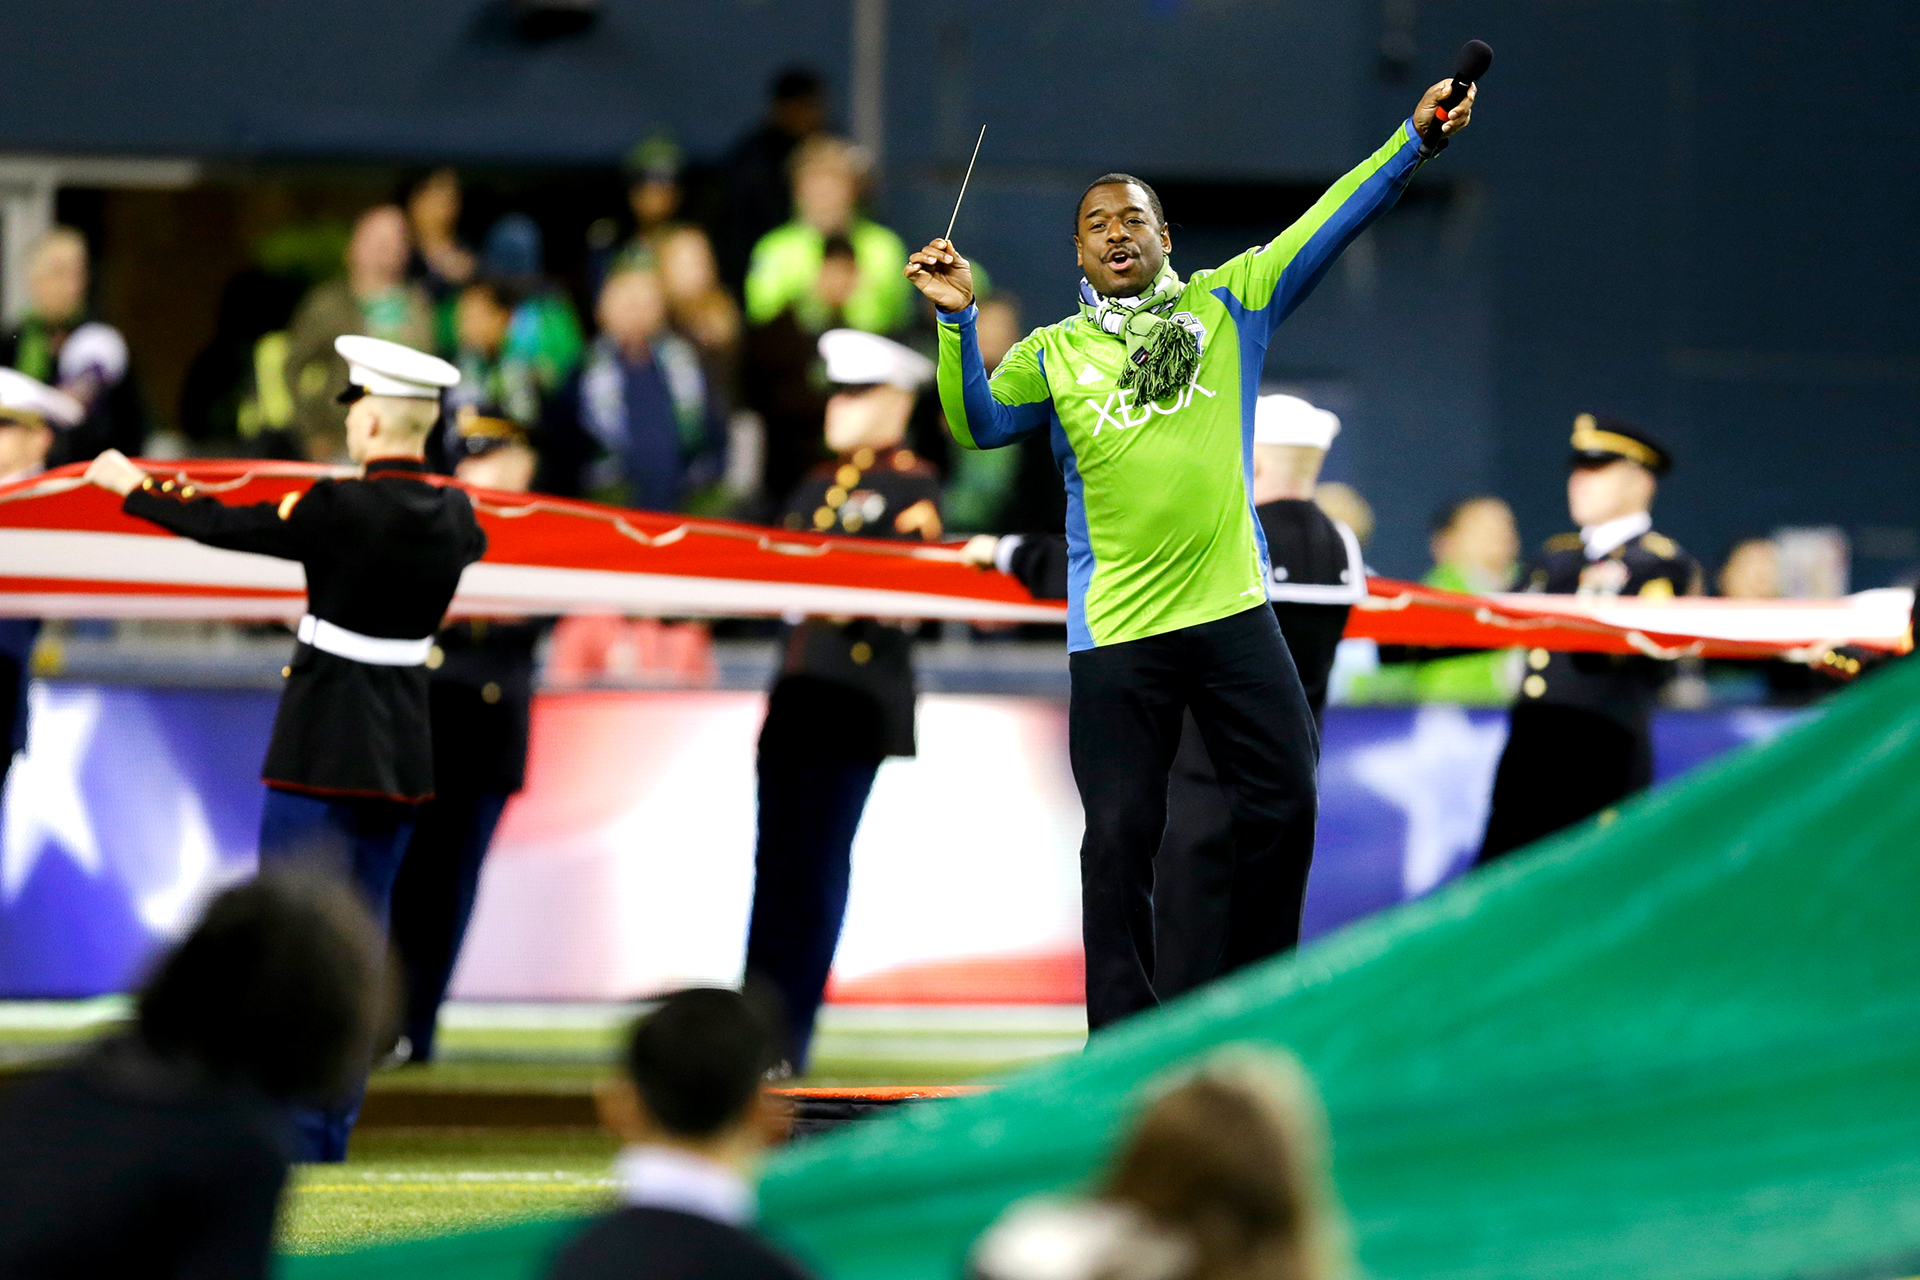 Stephen Michael Newby leads the crowd in the singing of the national anthem before the first game of the Western Conference semifinals between the Seattle Sounders and the Portland Timbers in the MLS Cup soccer playoffs, Saturday, Nov. 2, 2013, in Seattle. (AP Photo/Ted S. Warren)